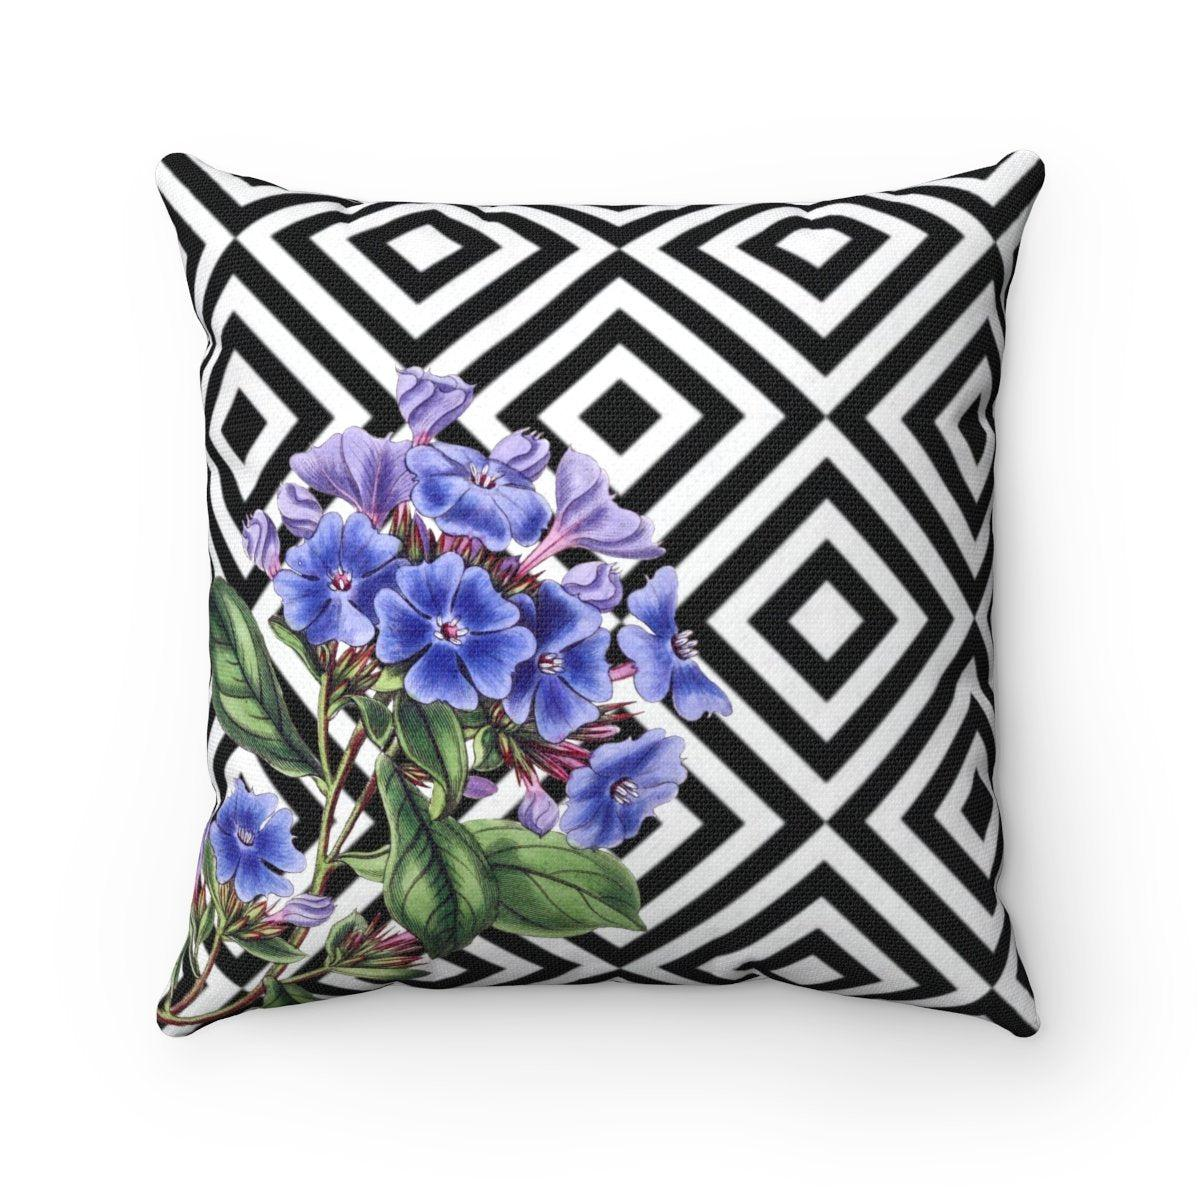 Luxury Purple Floral abstract decorative cushion cover-Home Decor - Decorative Accents - Pillows & Throws - Decorative Pillows-Maison d'Elite-14x14-Très Elite